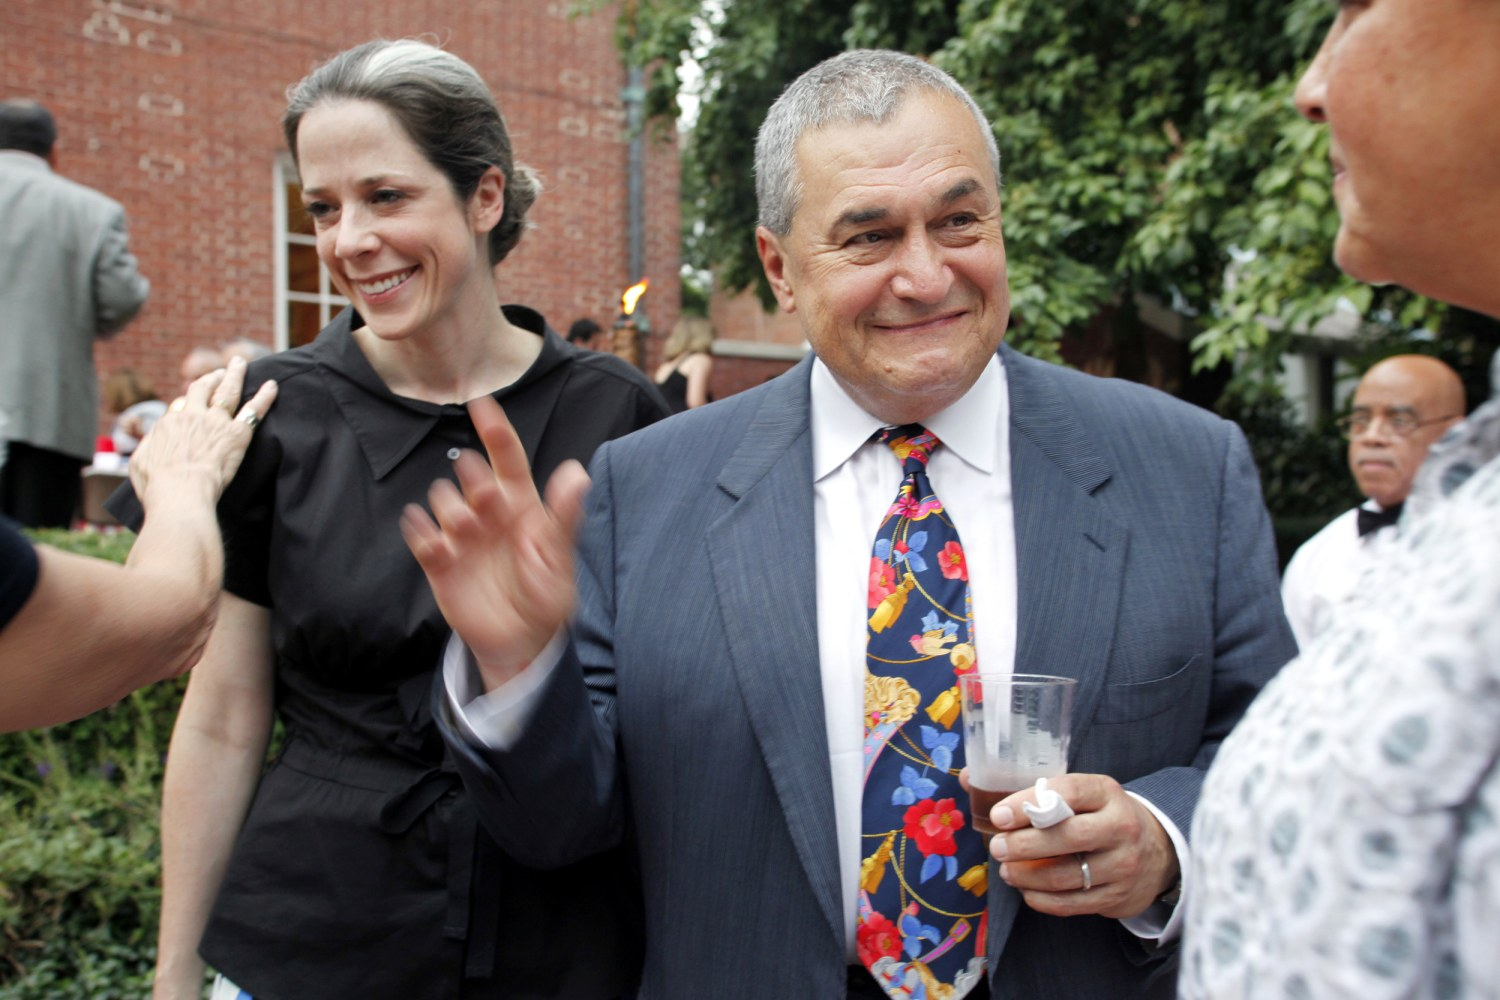 Tony Podesta Leaves Lobbying Firm After Inclusion in Mueller Probe